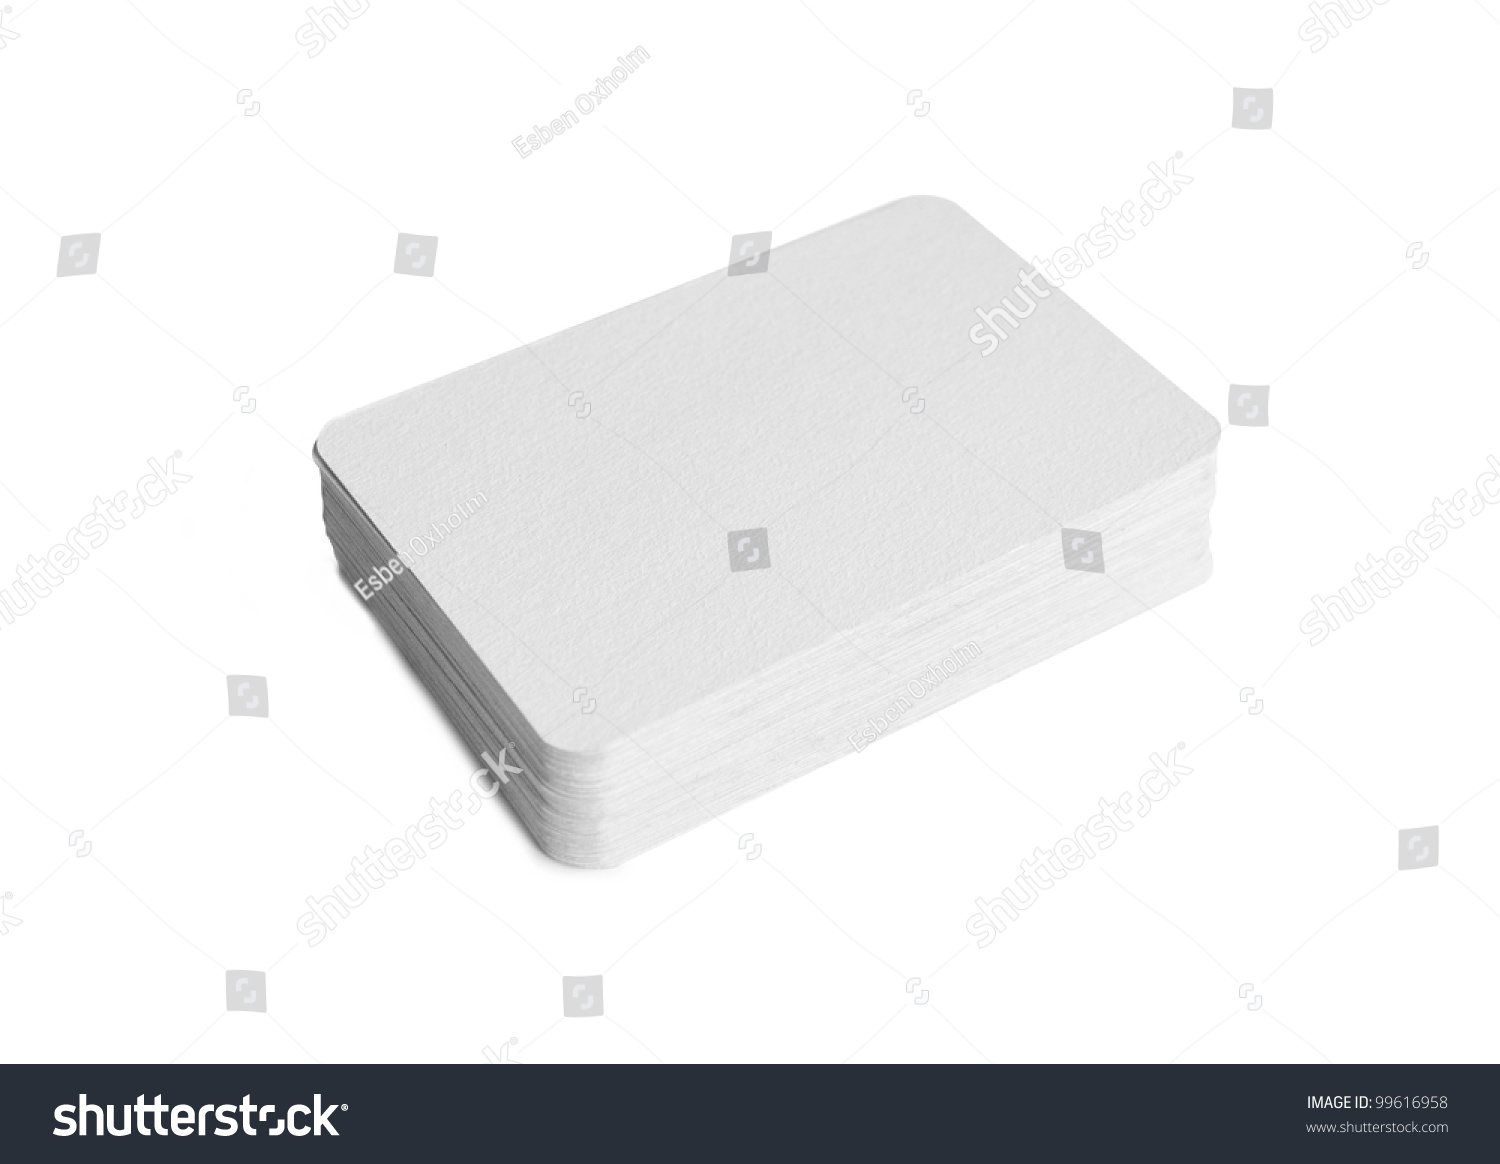 Photography Pile Blank Business Cards Rounded Stock Photo 99616958 ...